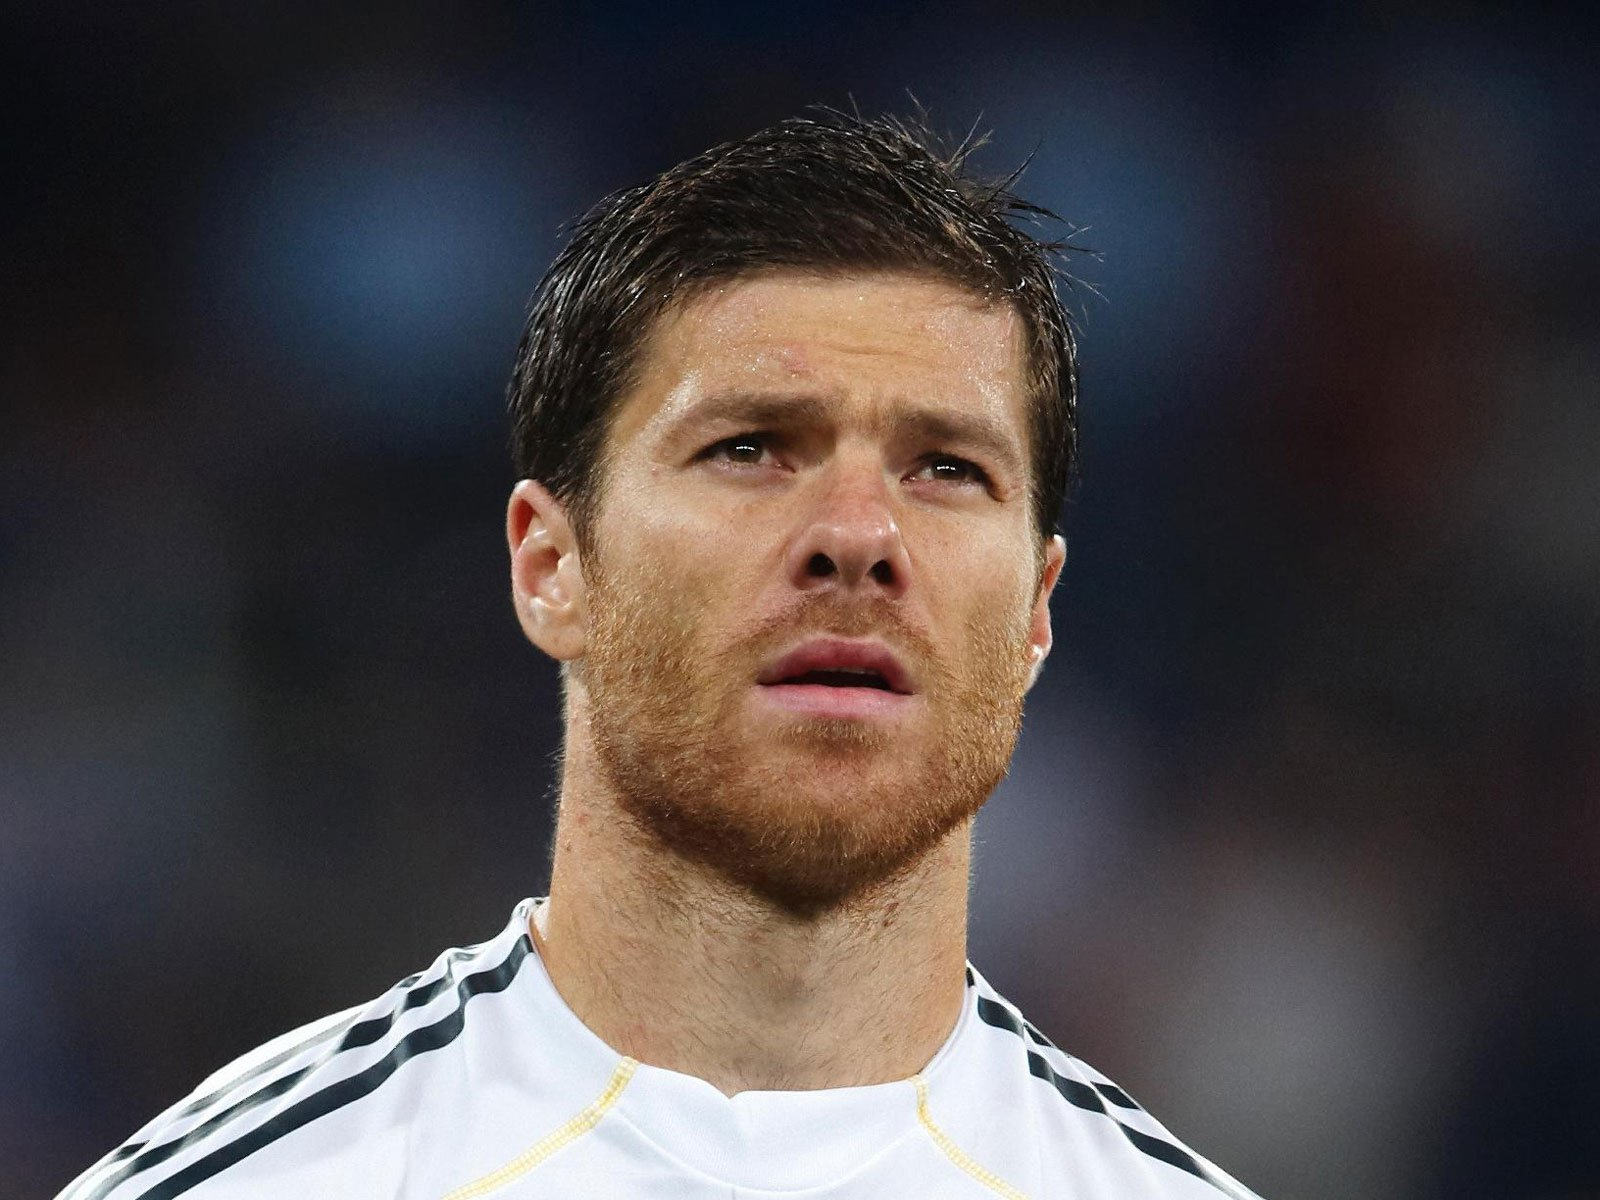 Xabi Alonso Wallpapers 2013   Football Wallpapers Soccer Photos 1600x1200